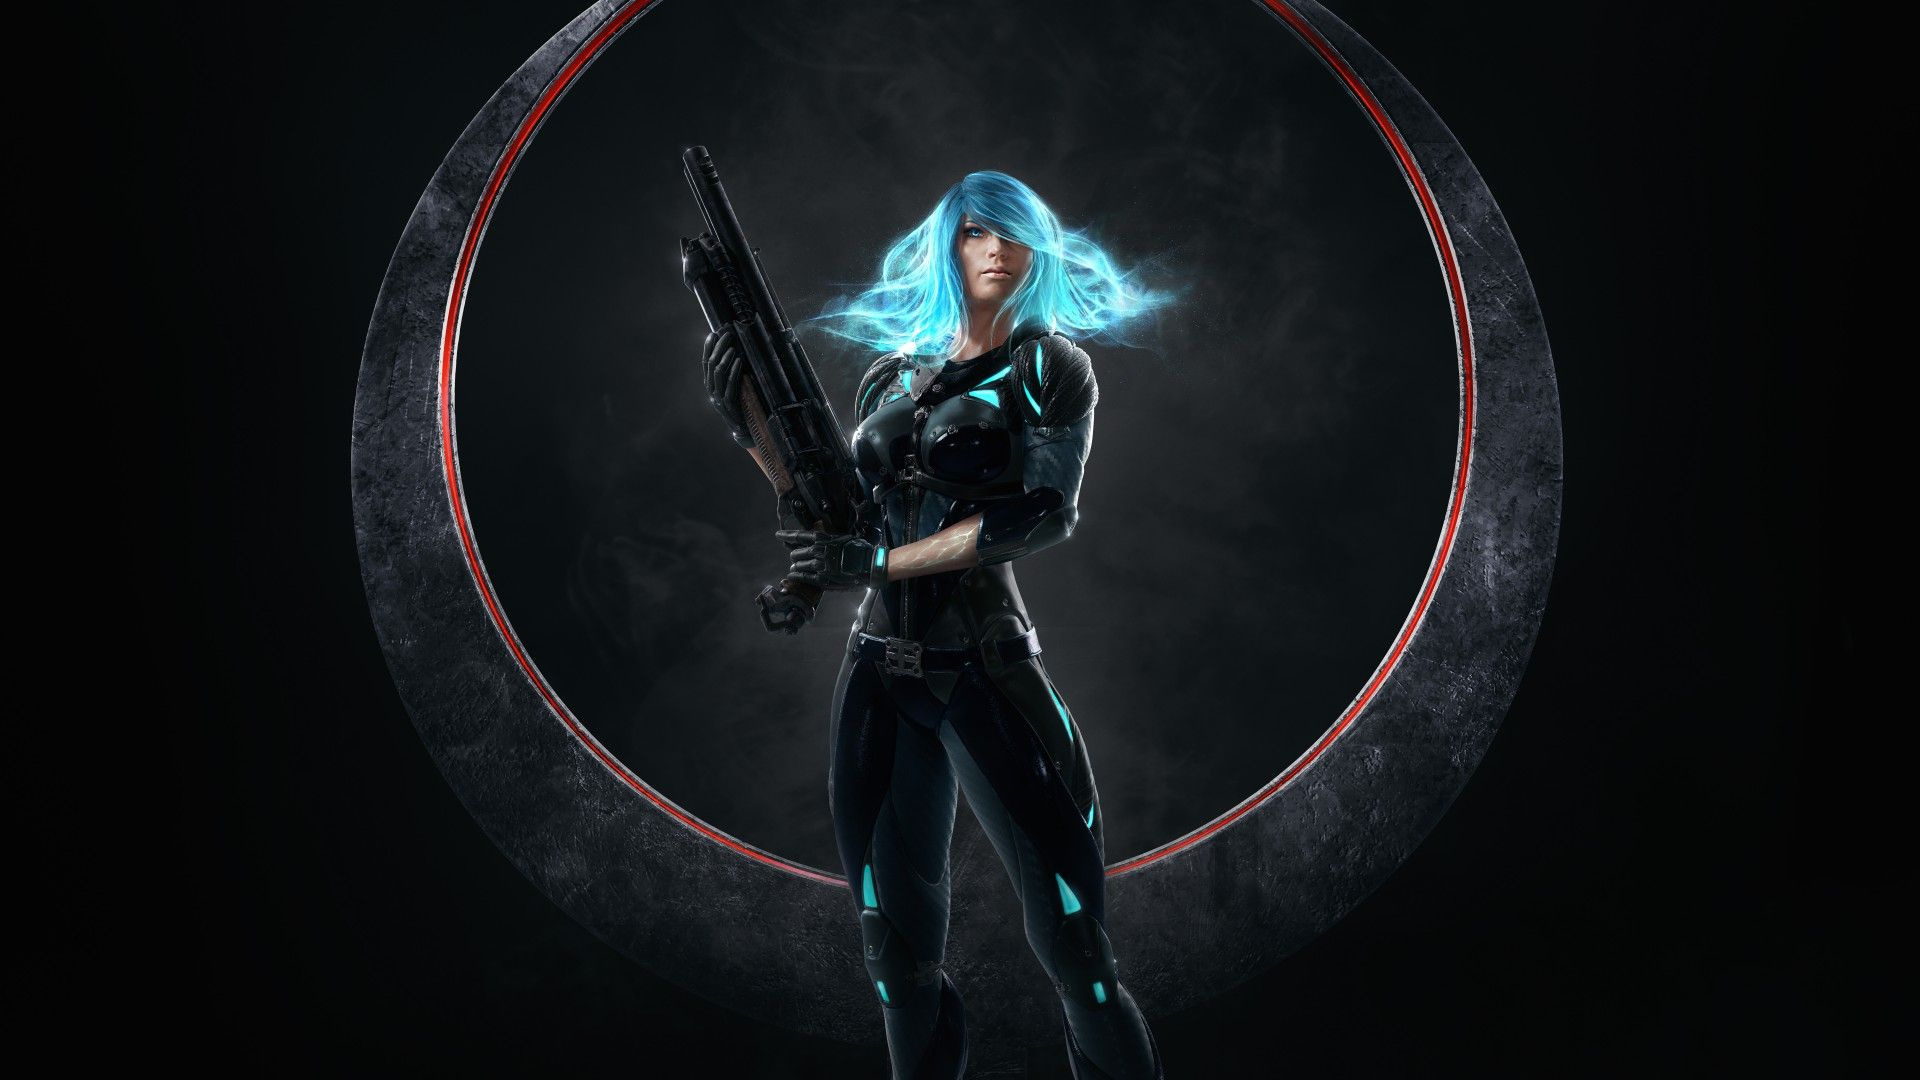 Download Wallpaper Weapon Girl Quake Blue Hair Champions